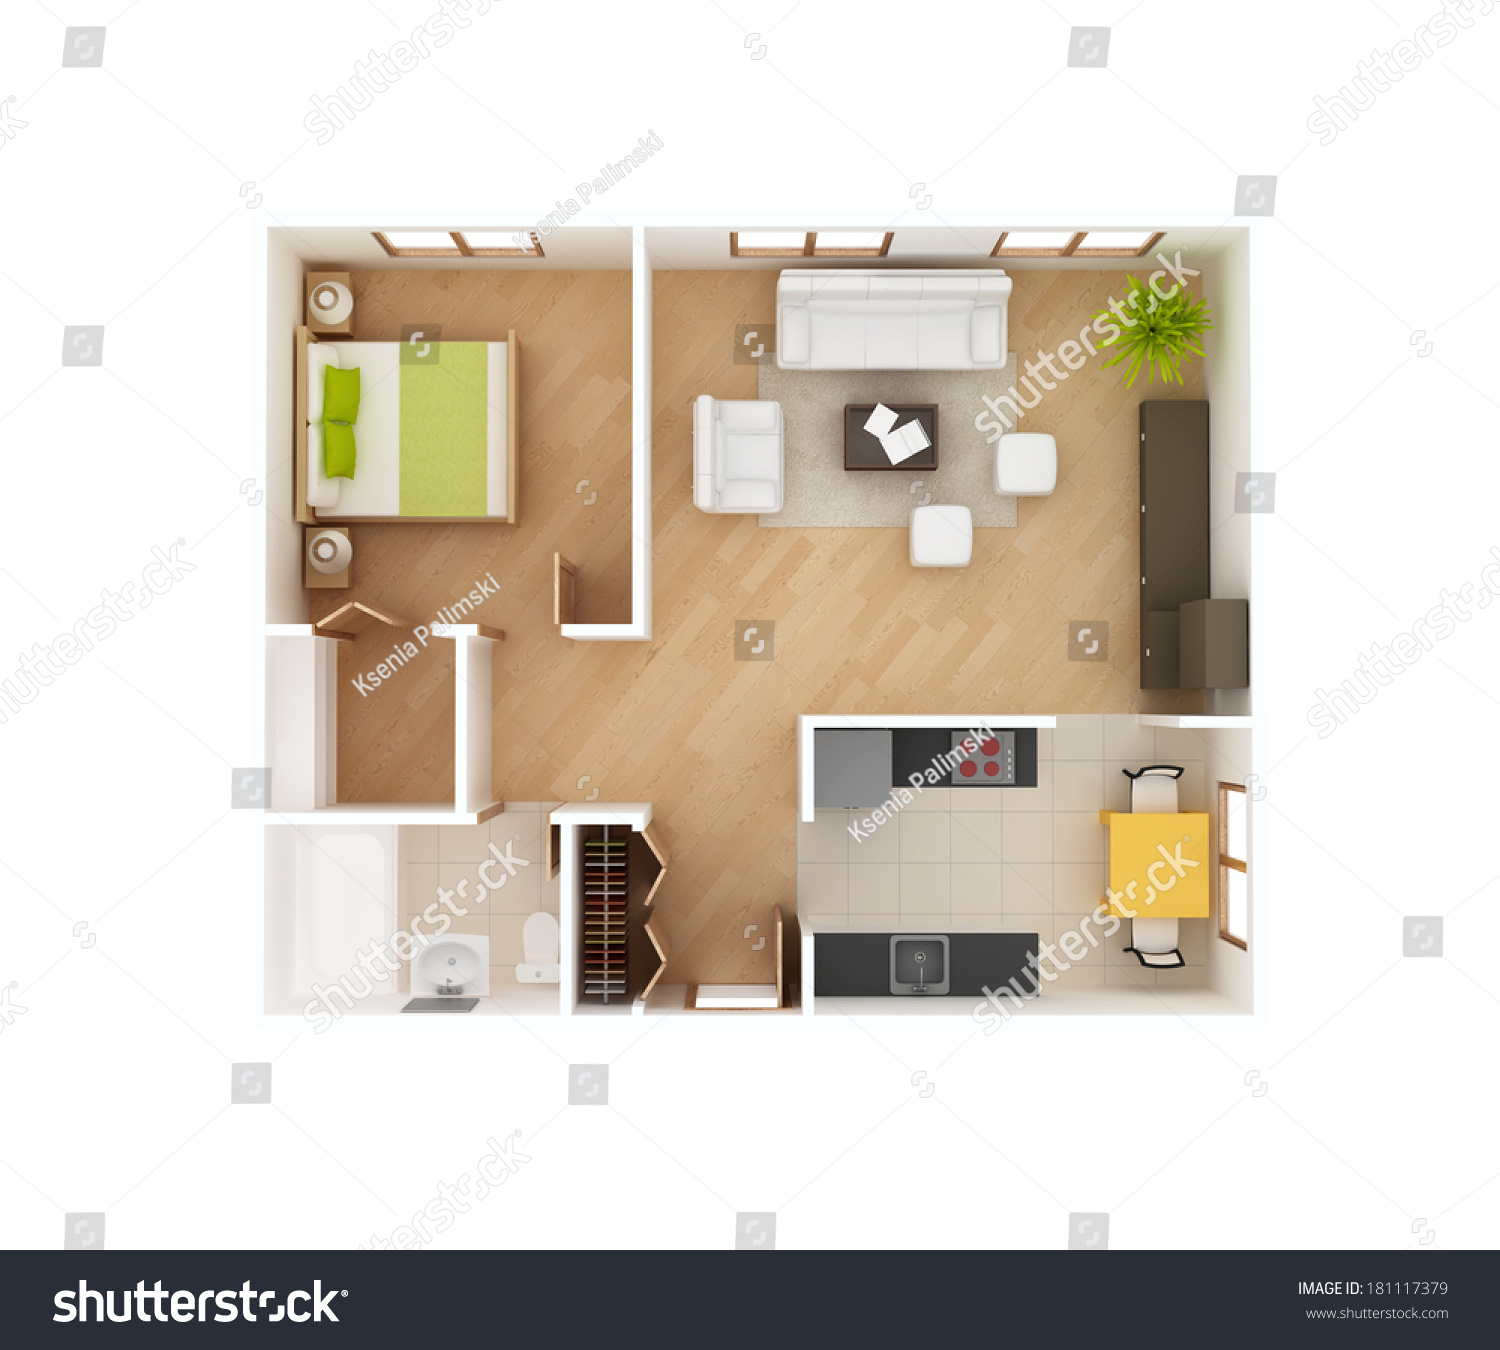 Simple 3d floor plan house top stock illustration for Floorplan com